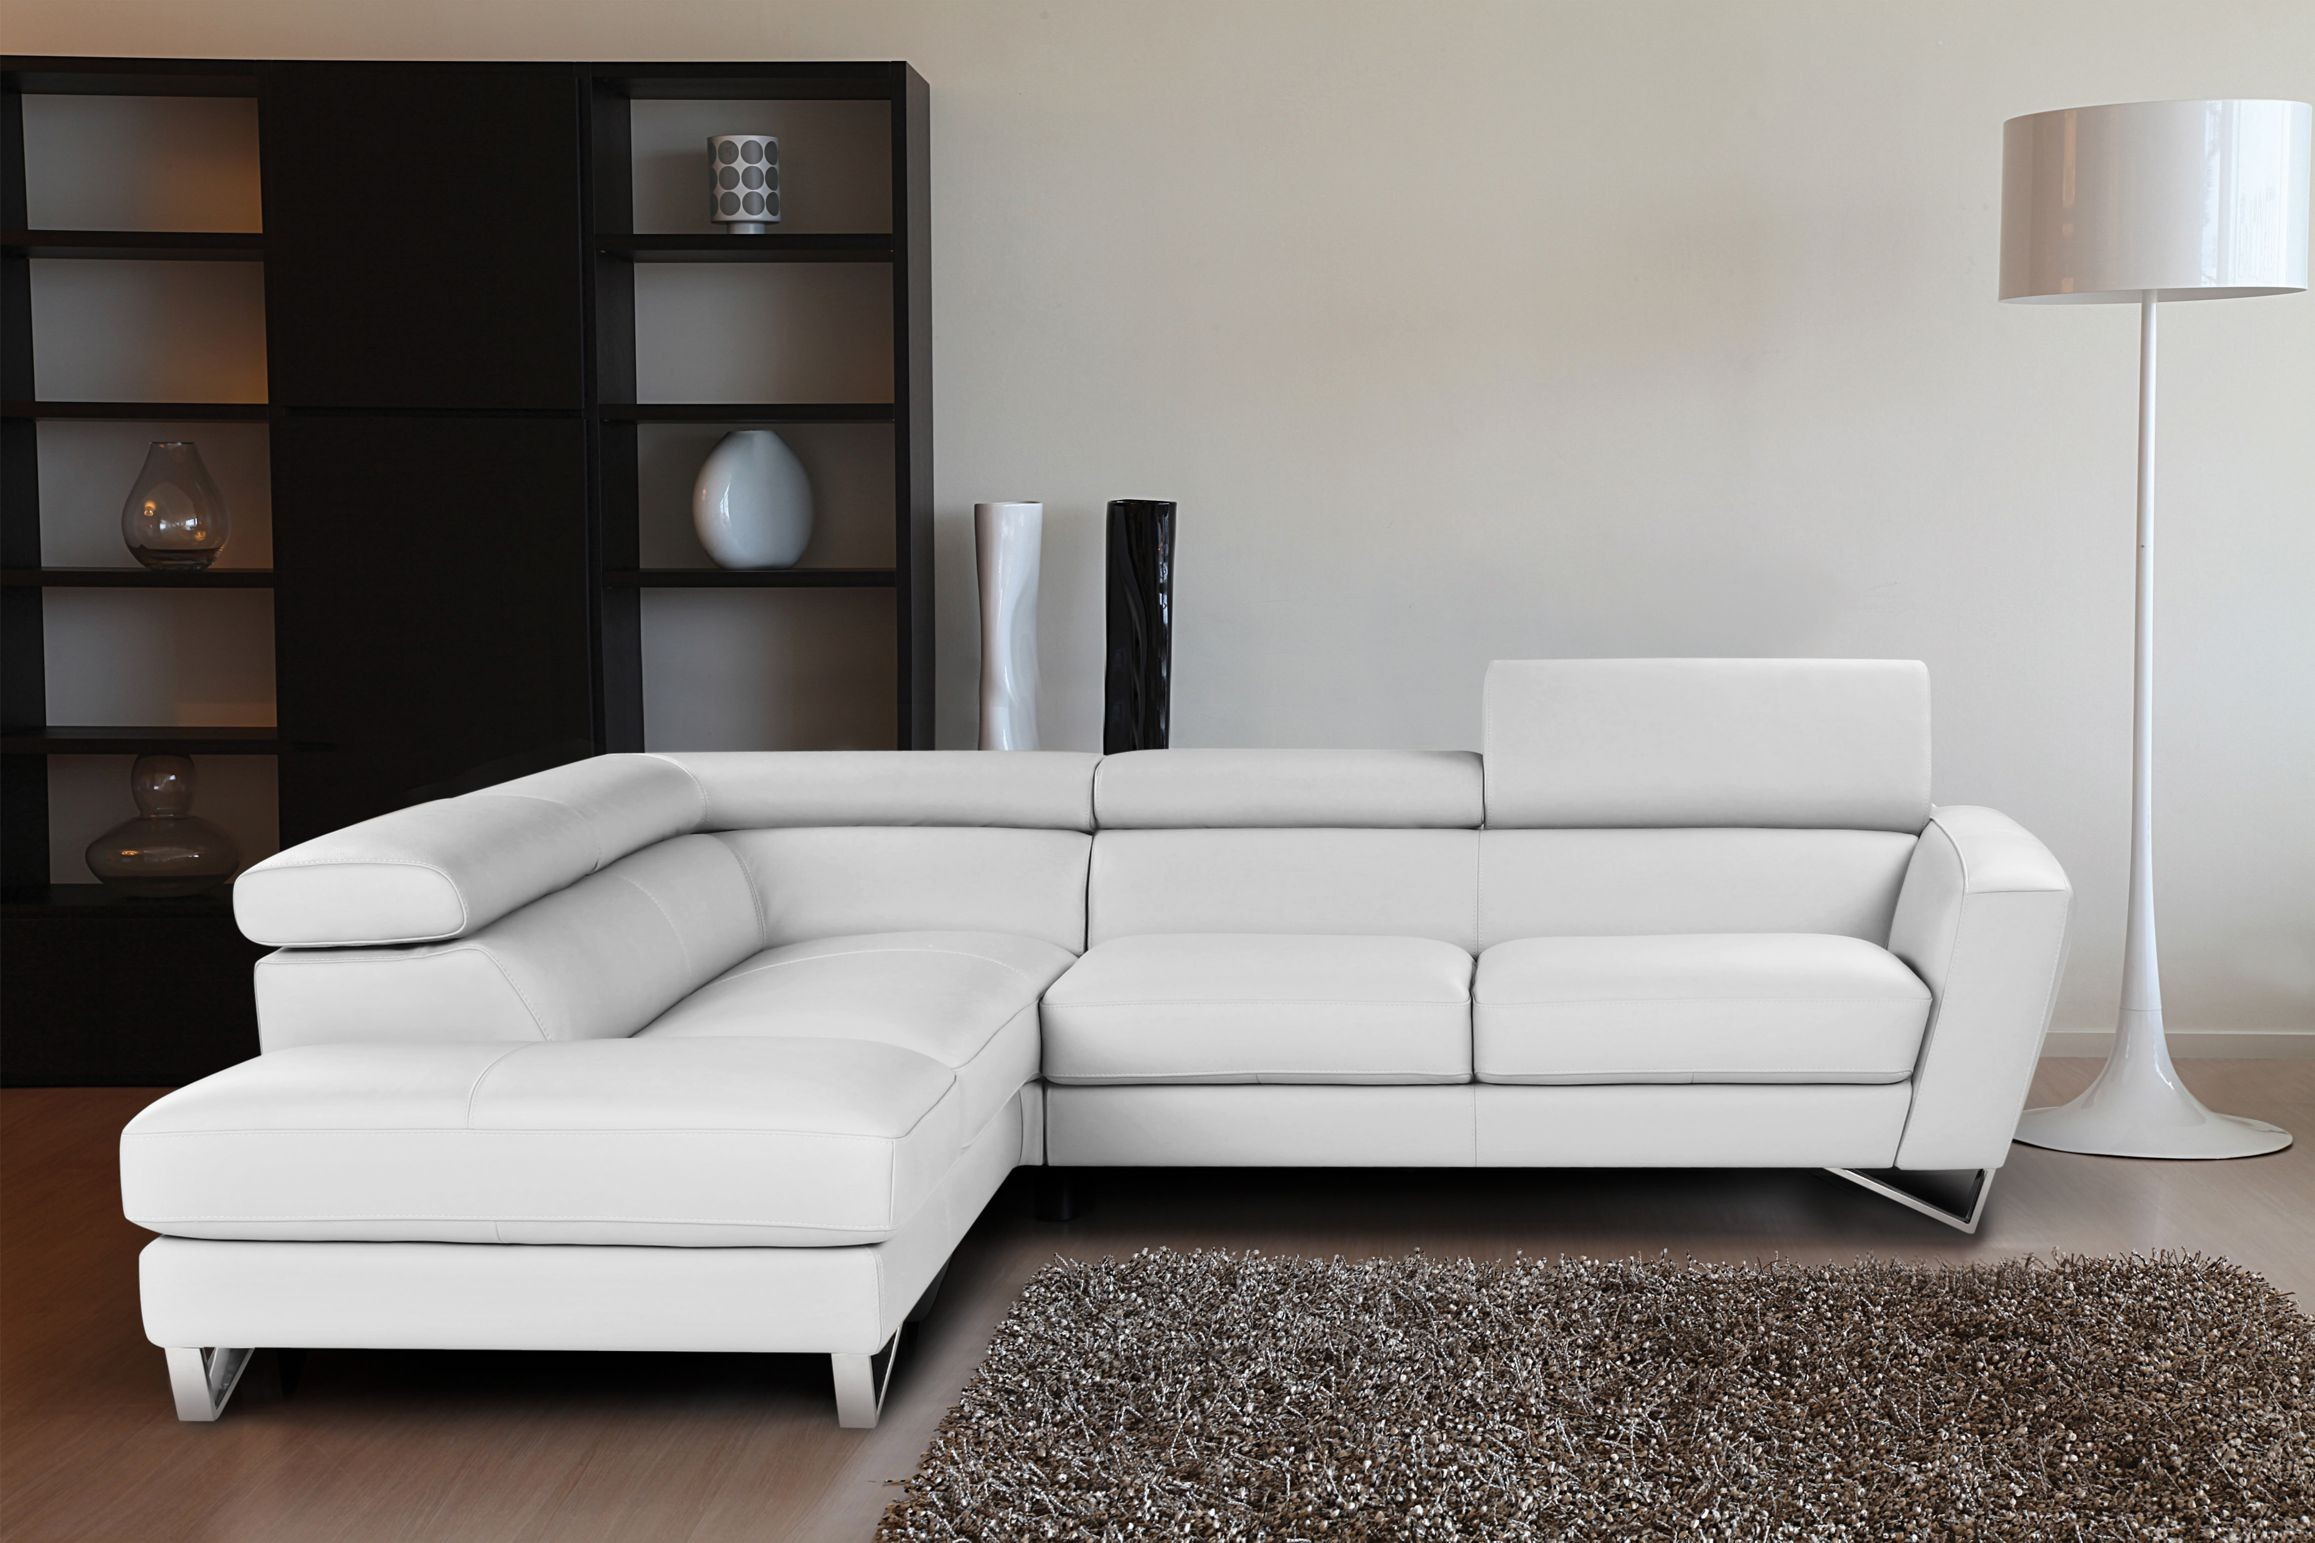 Cozy White Leather Sectional For Small Spaces Living Room With White  Leather Sectional Sofa